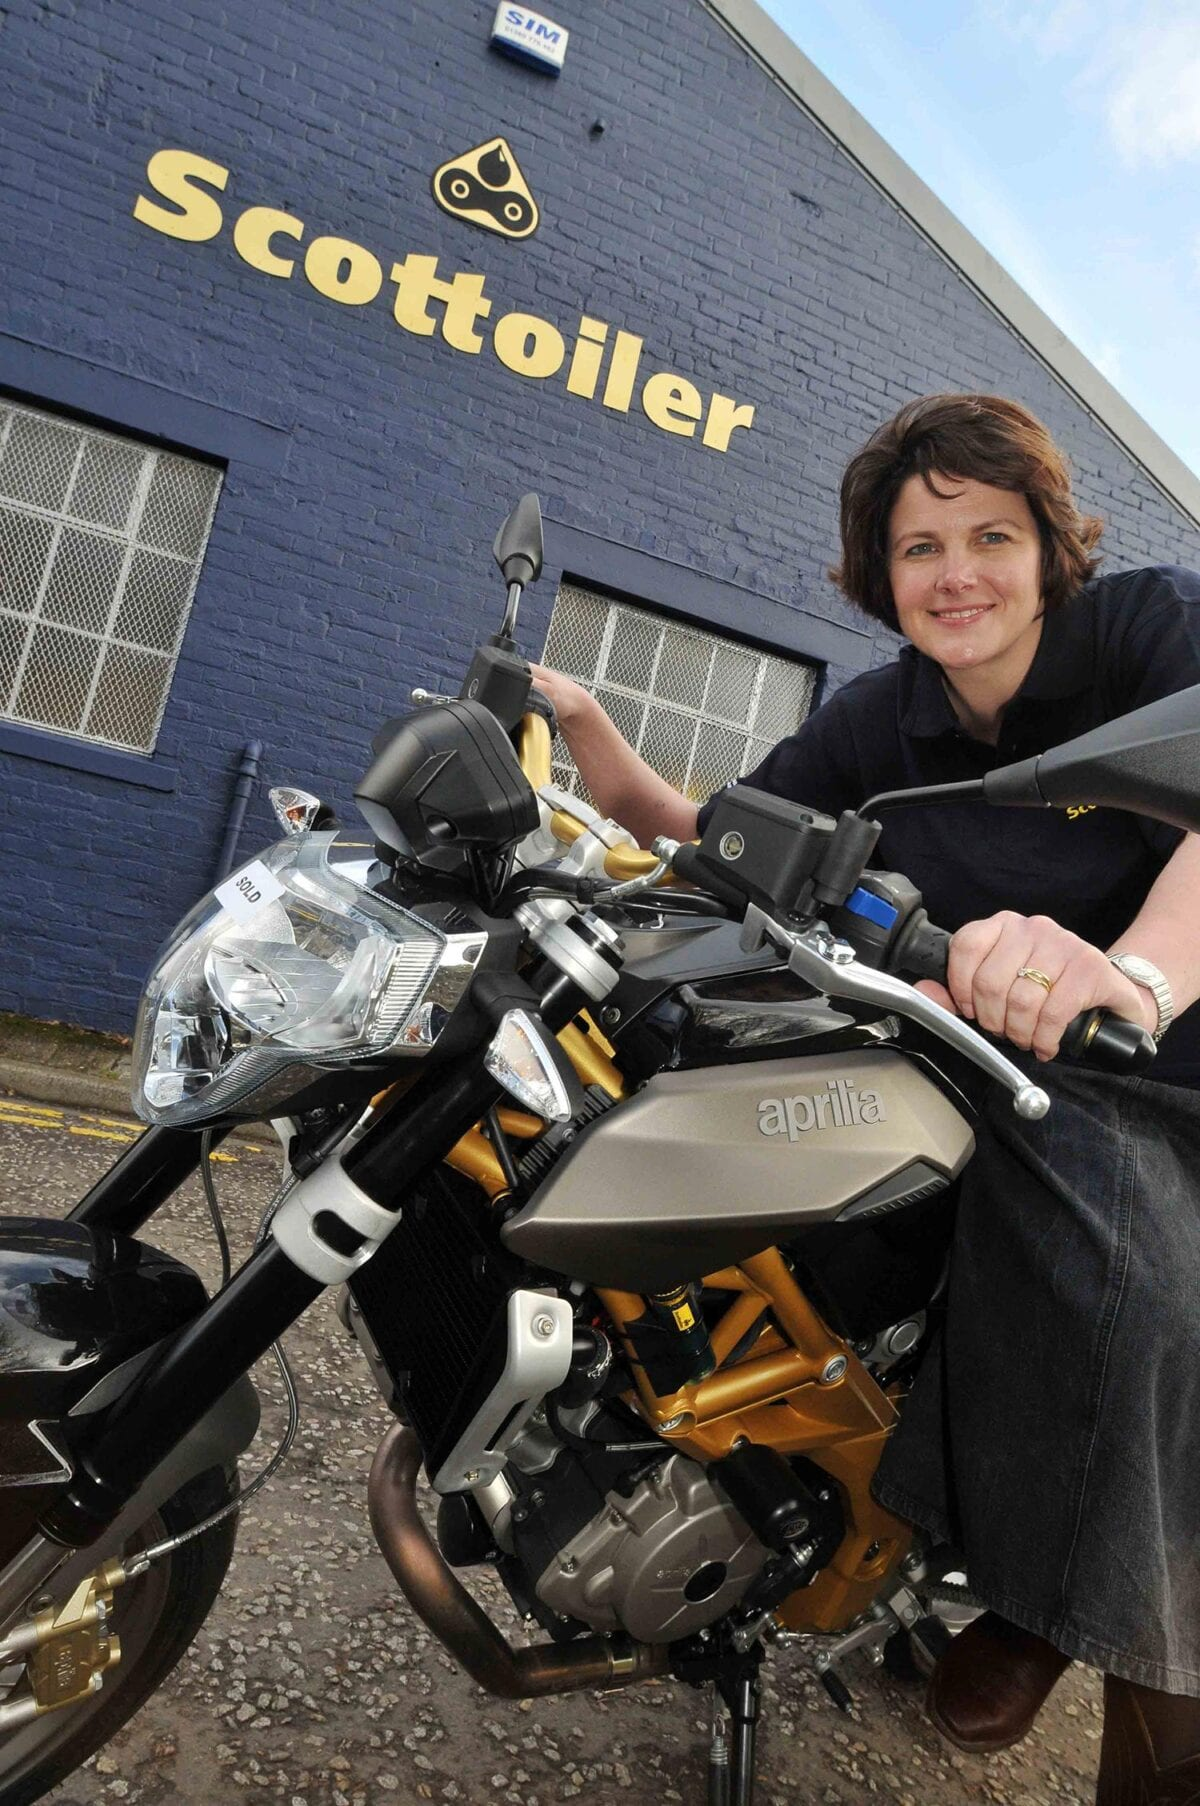 Scottoiler MD, Fiona Scott Thomson